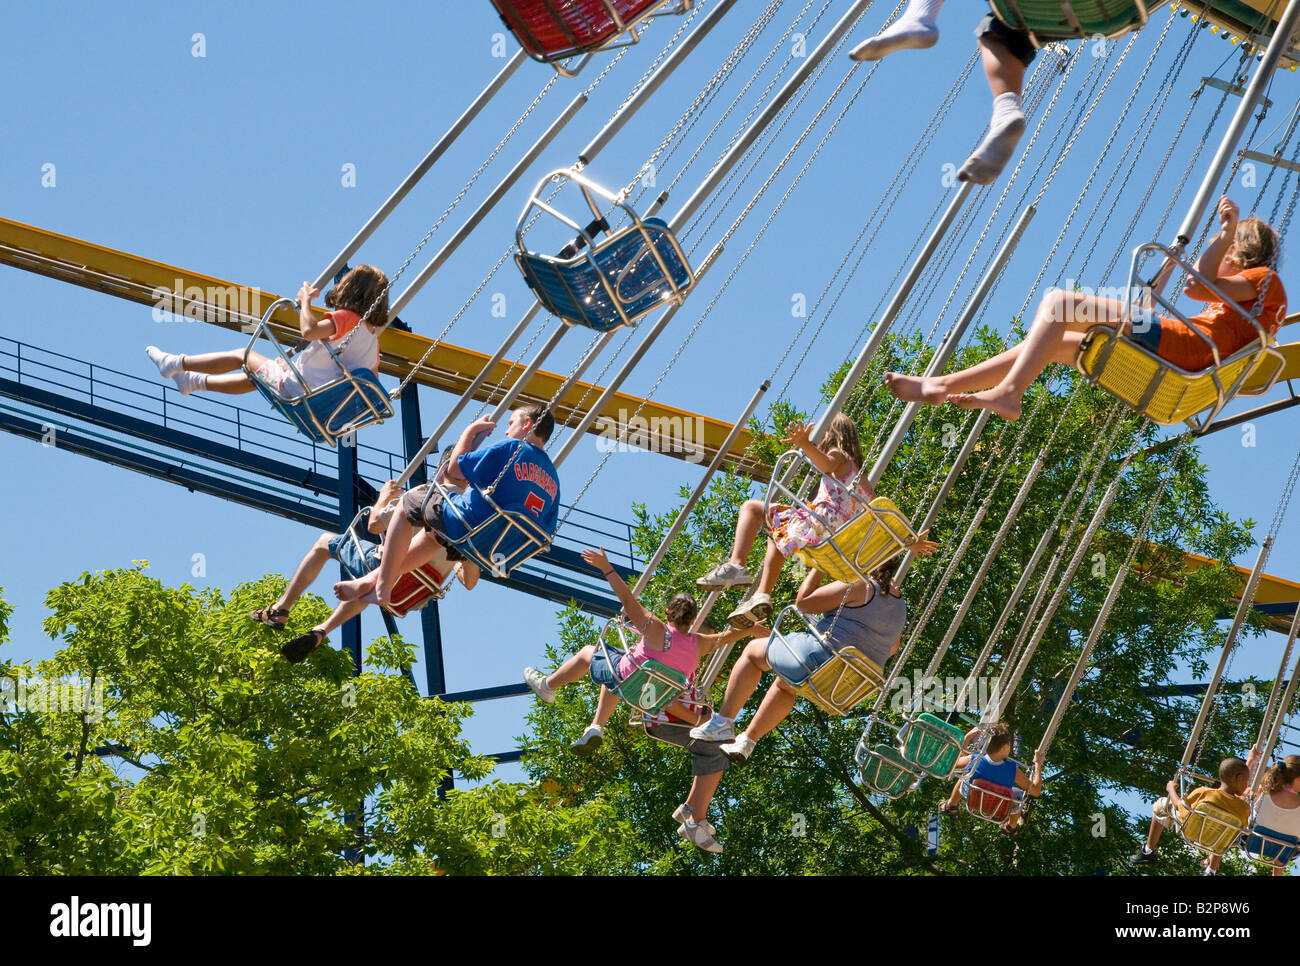 Whirligig ride at Six Flags Great America - Stock Image